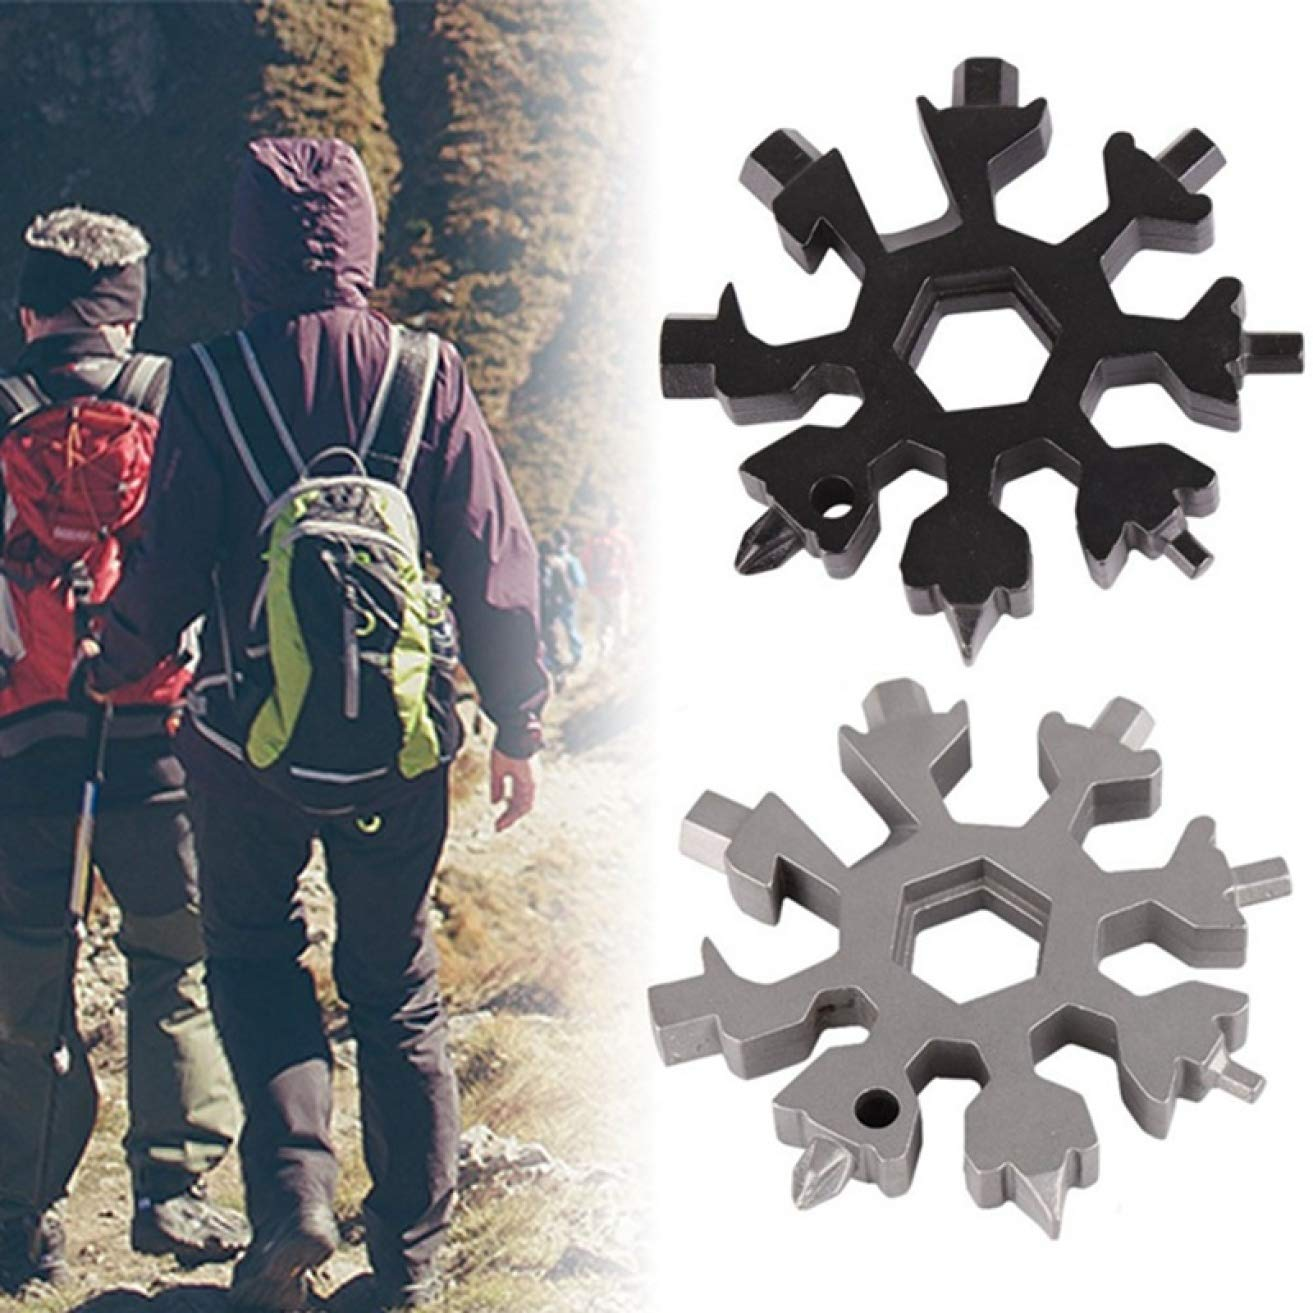 SHengyan satisfying 18-In-1 Multi-Tool Card Snowflake Tool Card Combination Compact And Portable Tool Screwdriver Outdoor Products sweet None black